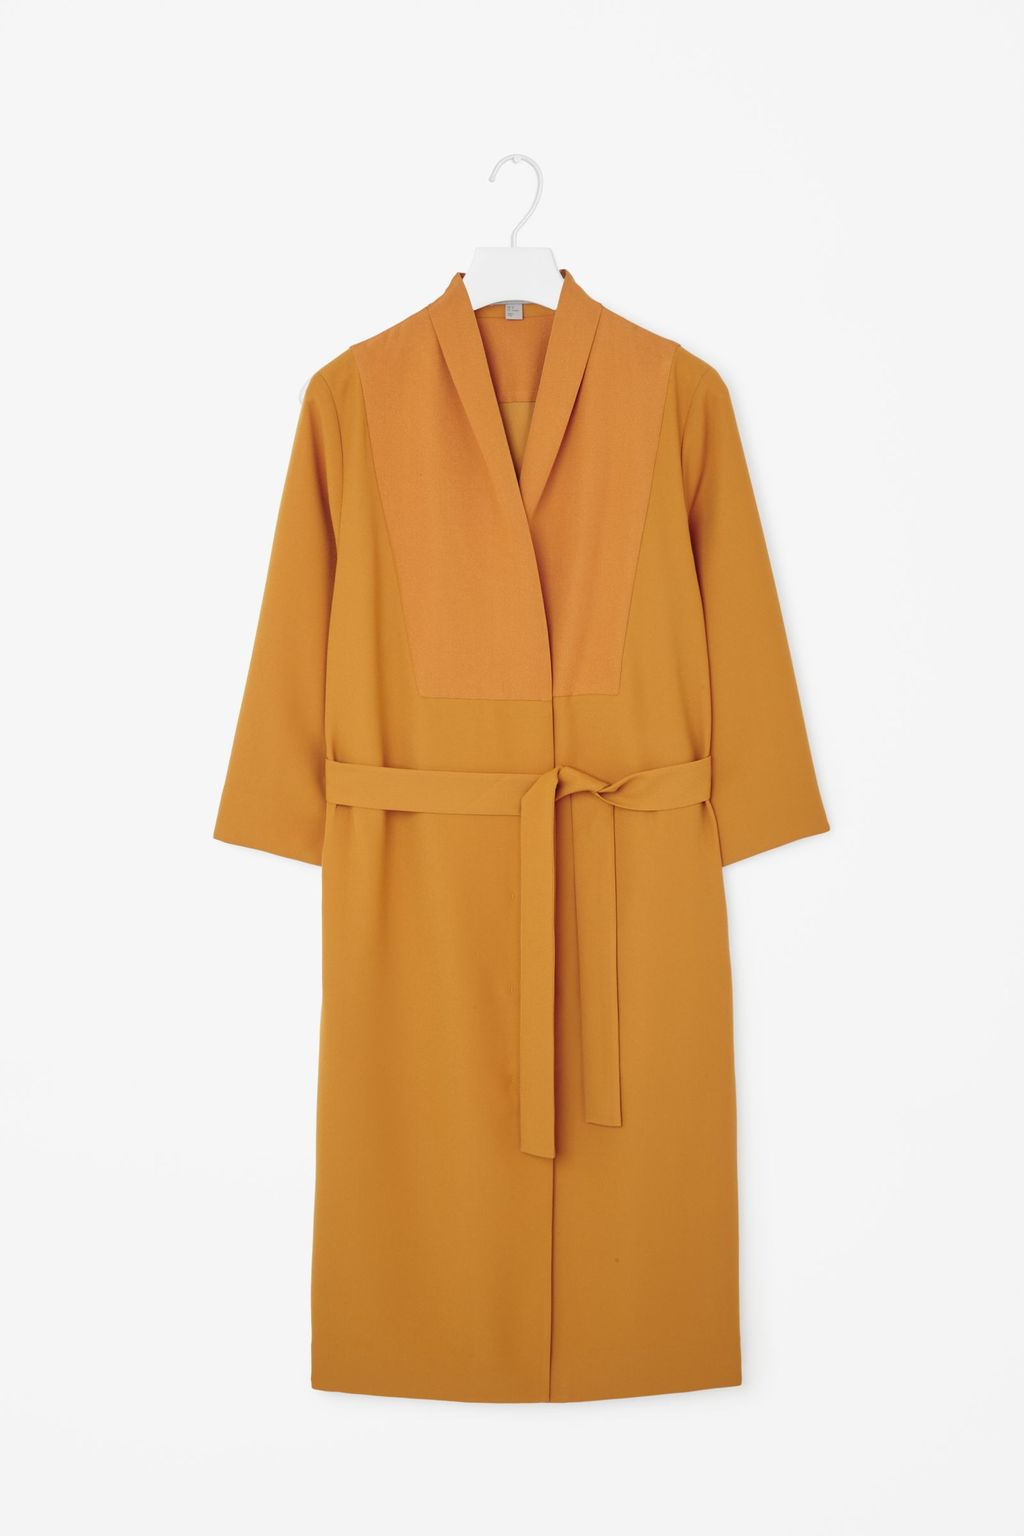 Long Blazer Dress - style: faux wrap/wrap; neckline: v-neck; fit: loose; pattern: plain; waist detail: belted waist/tie at waist/drawstring; predominant colour: mustard; occasions: casual, creative work; length: on the knee; fibres: polyester/polyamide - 100%; sleeve length: 3/4 length; sleeve style: standard; pattern type: fabric; texture group: woven light midweight; season: a/w 2015; wardrobe: highlight